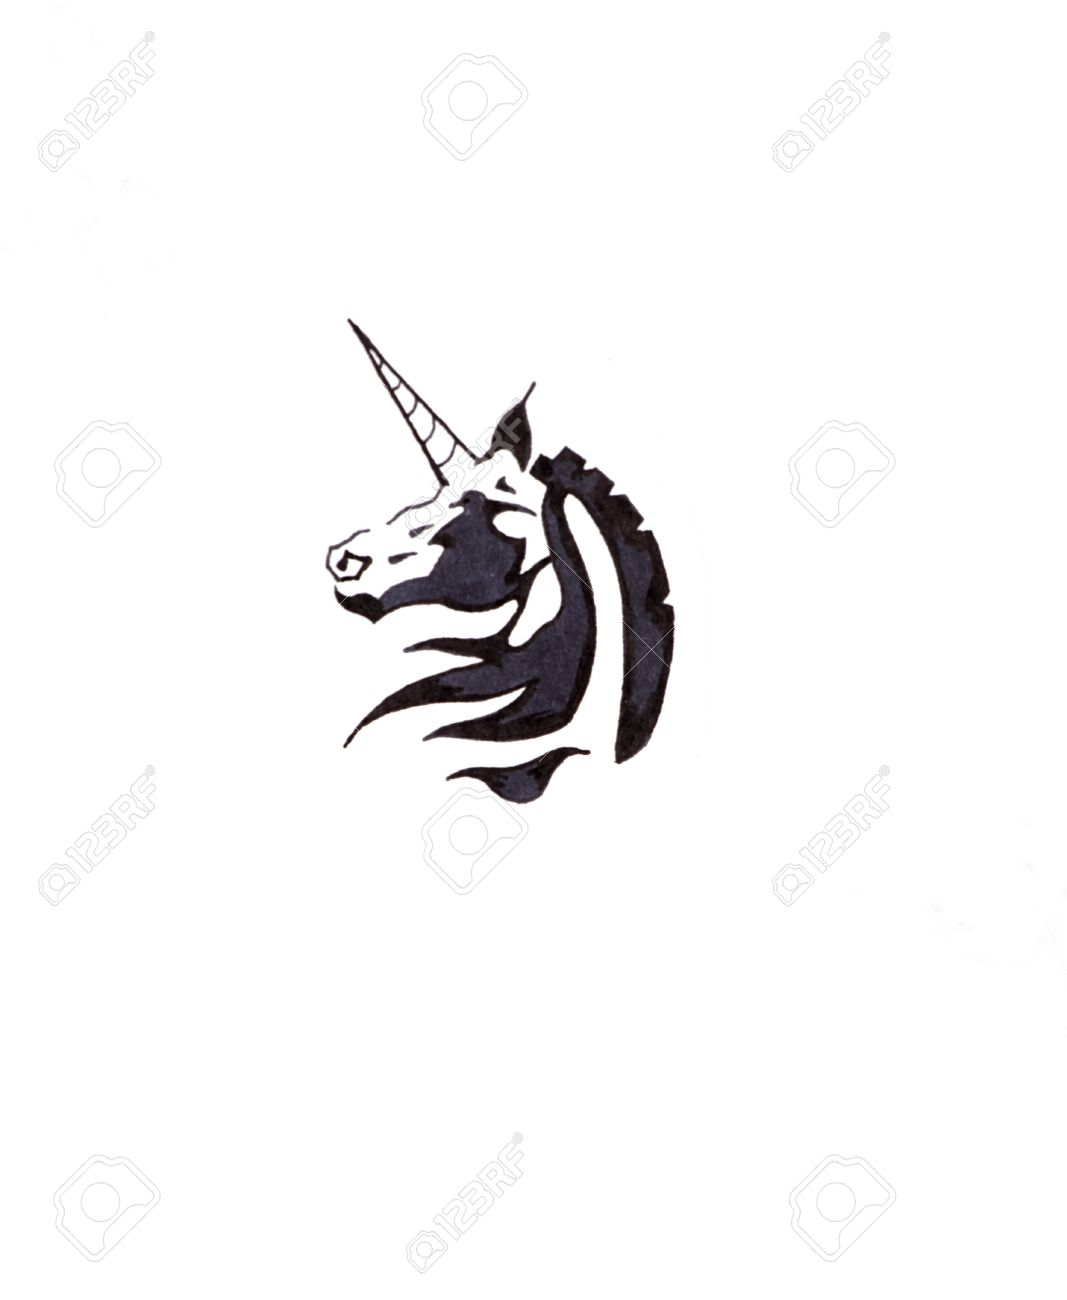 Sketch of tattoo art, horse, unicorn Stock Photo - 8207174